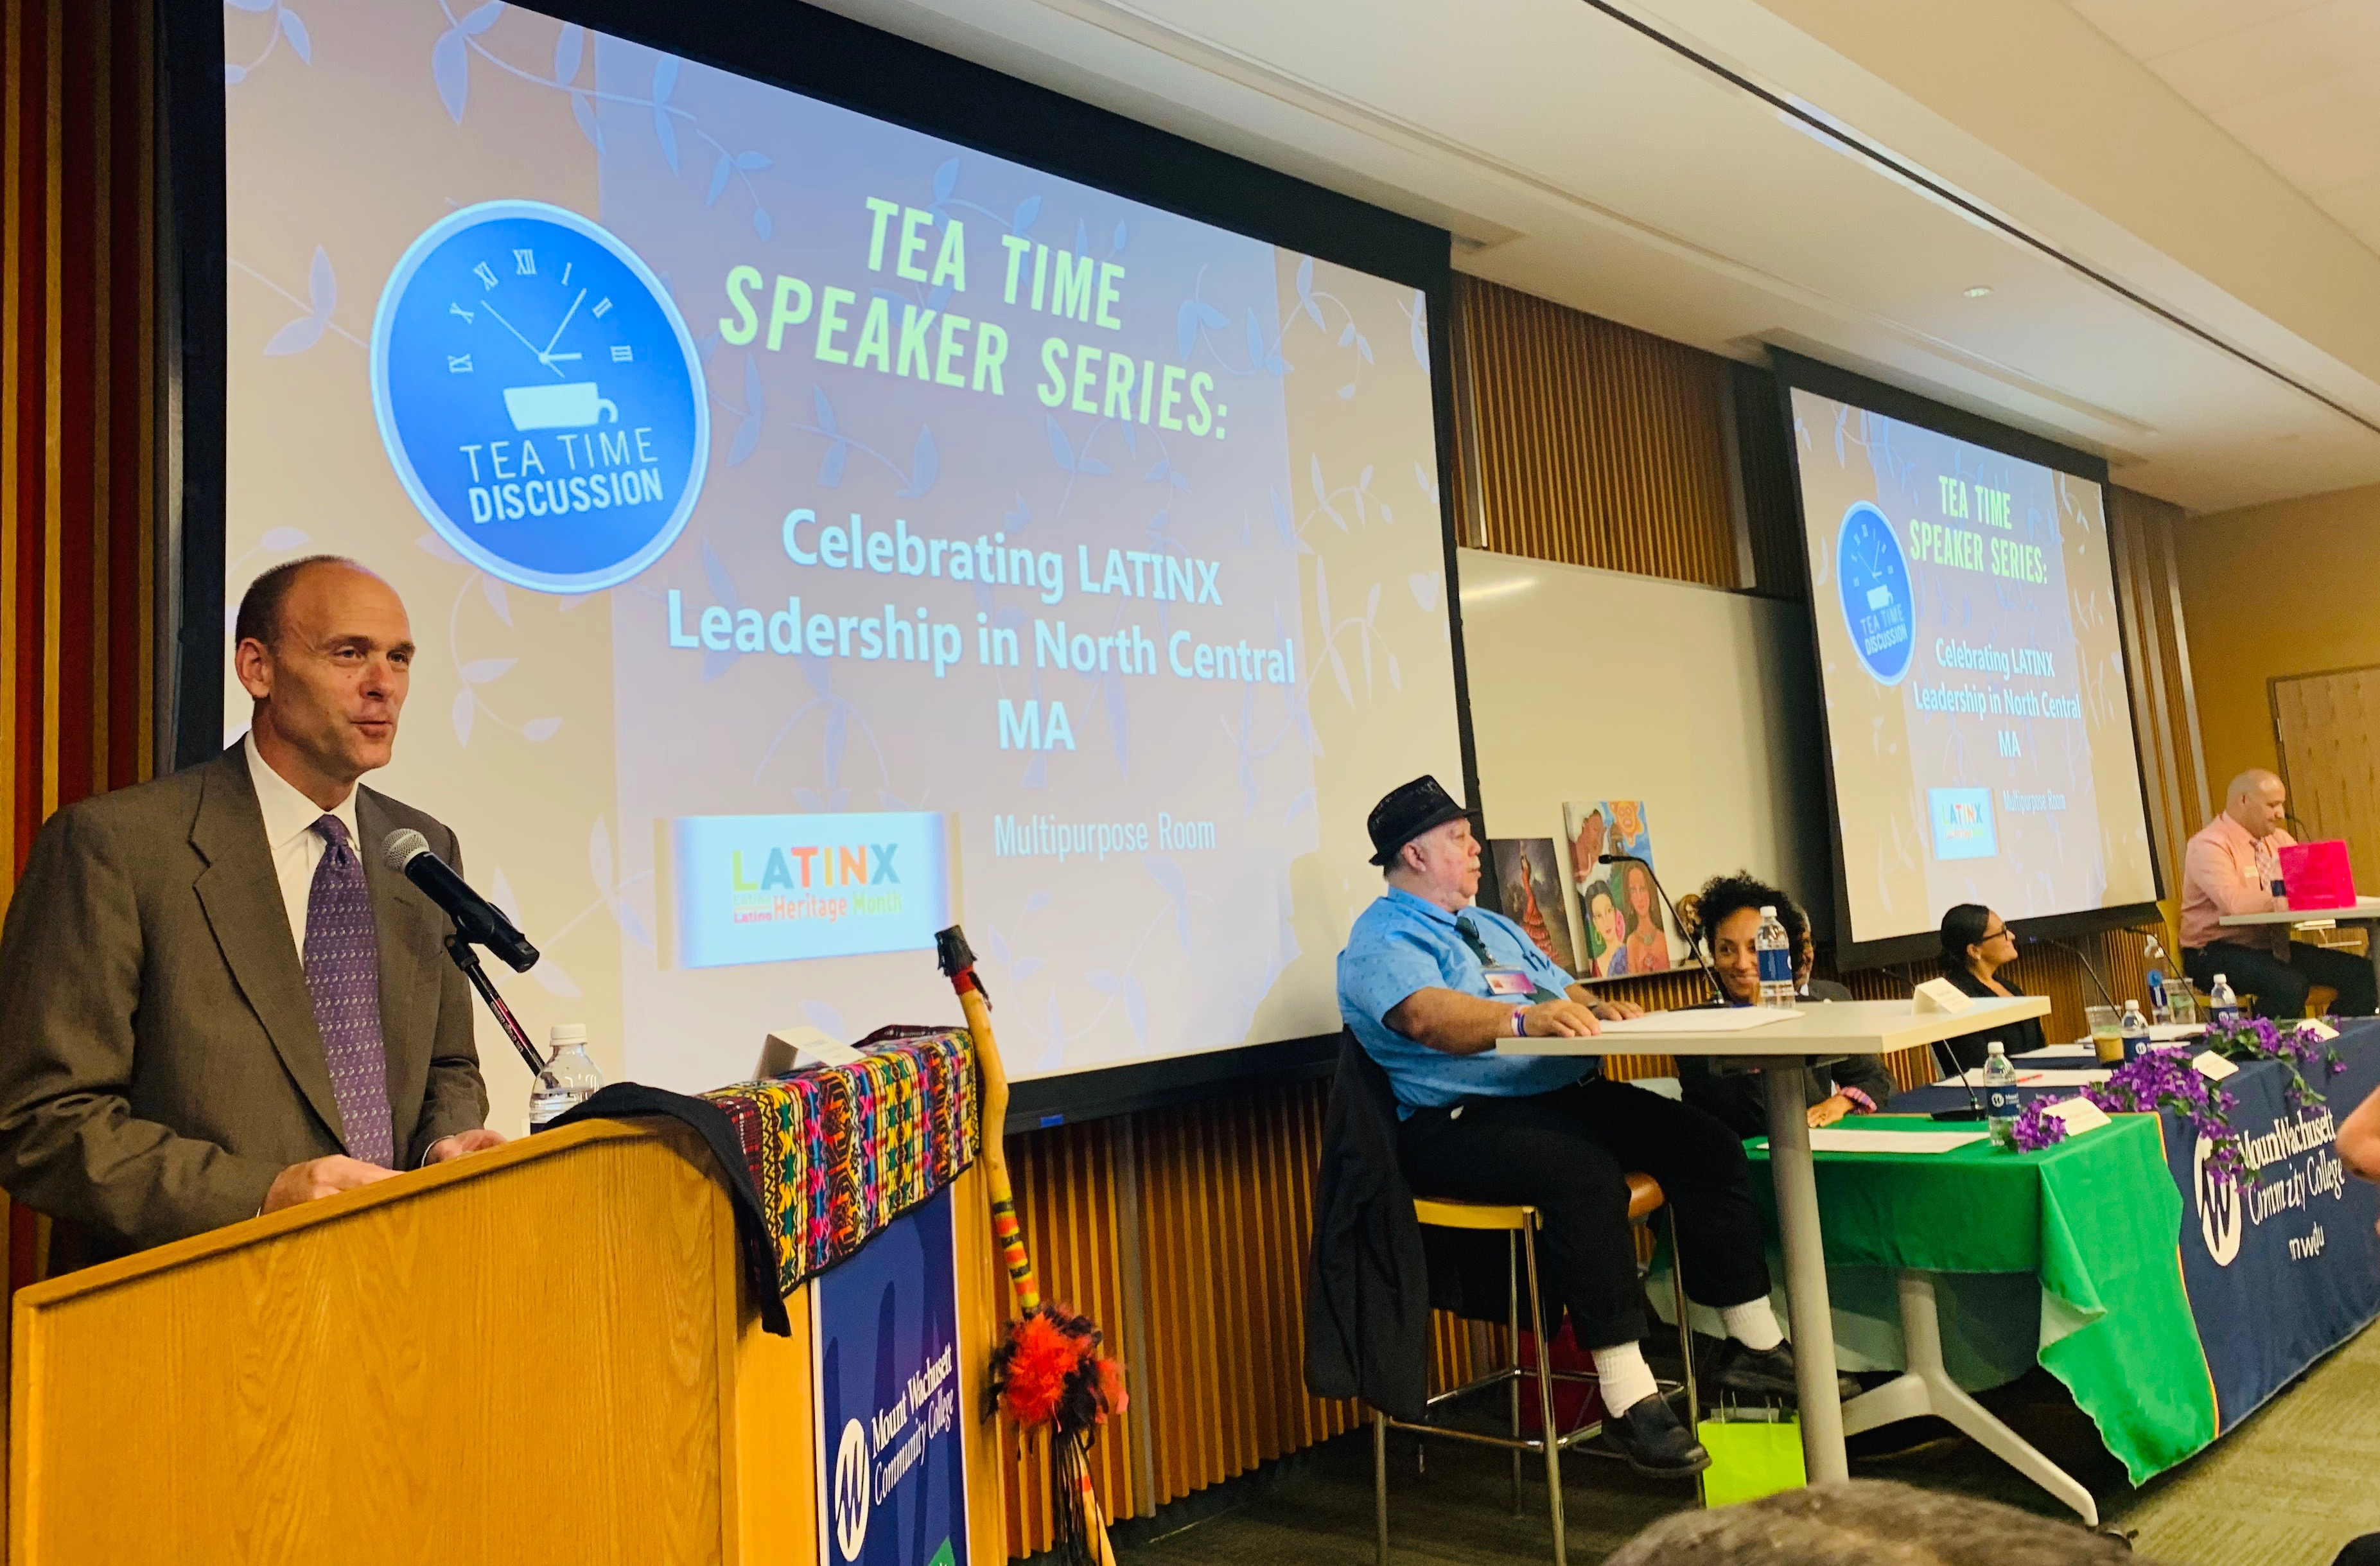 President James Vander Hooven welcomes a panel of Latinx leaders to a Tea Time Speaker Series event at Mount Wachusett Community College.